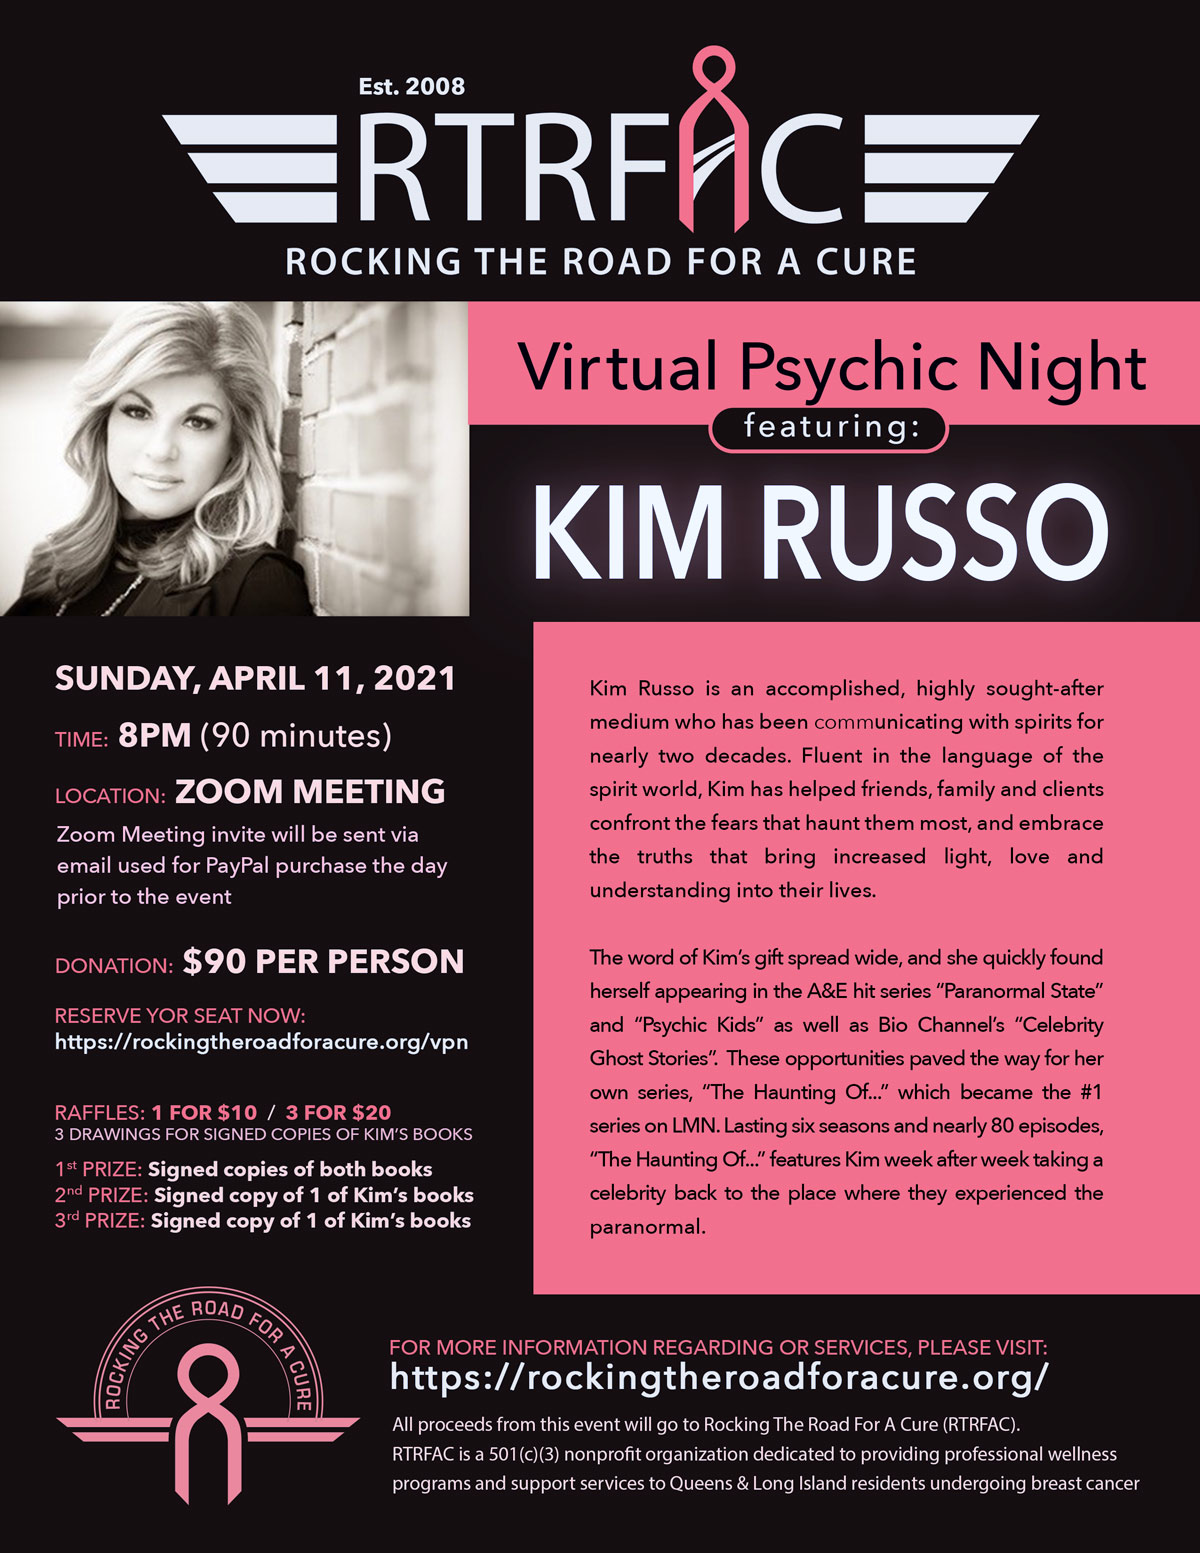 Flyer(jpeg format) for Virtual Psychic Night with Kim Russo